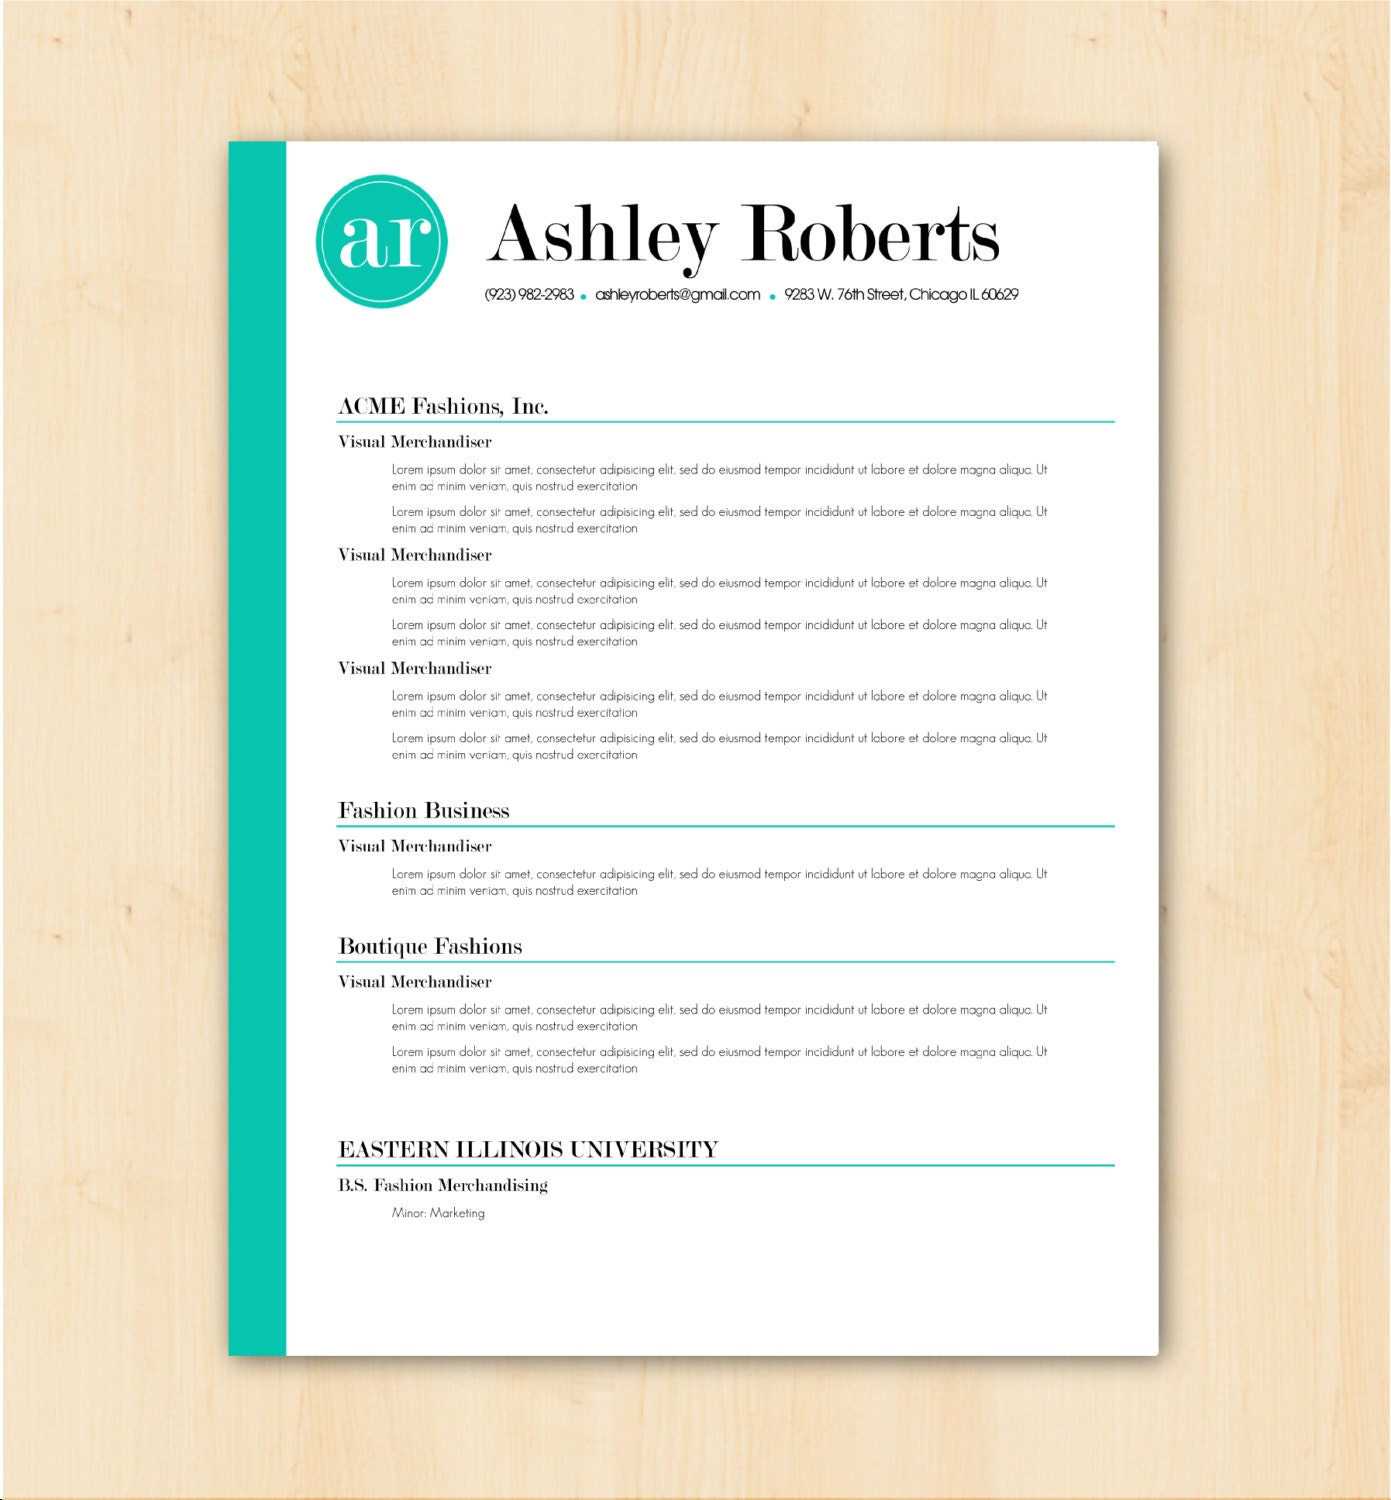 designed resume templates cv format design cv templates cv resume template cv template the ashley roberts by phdpress